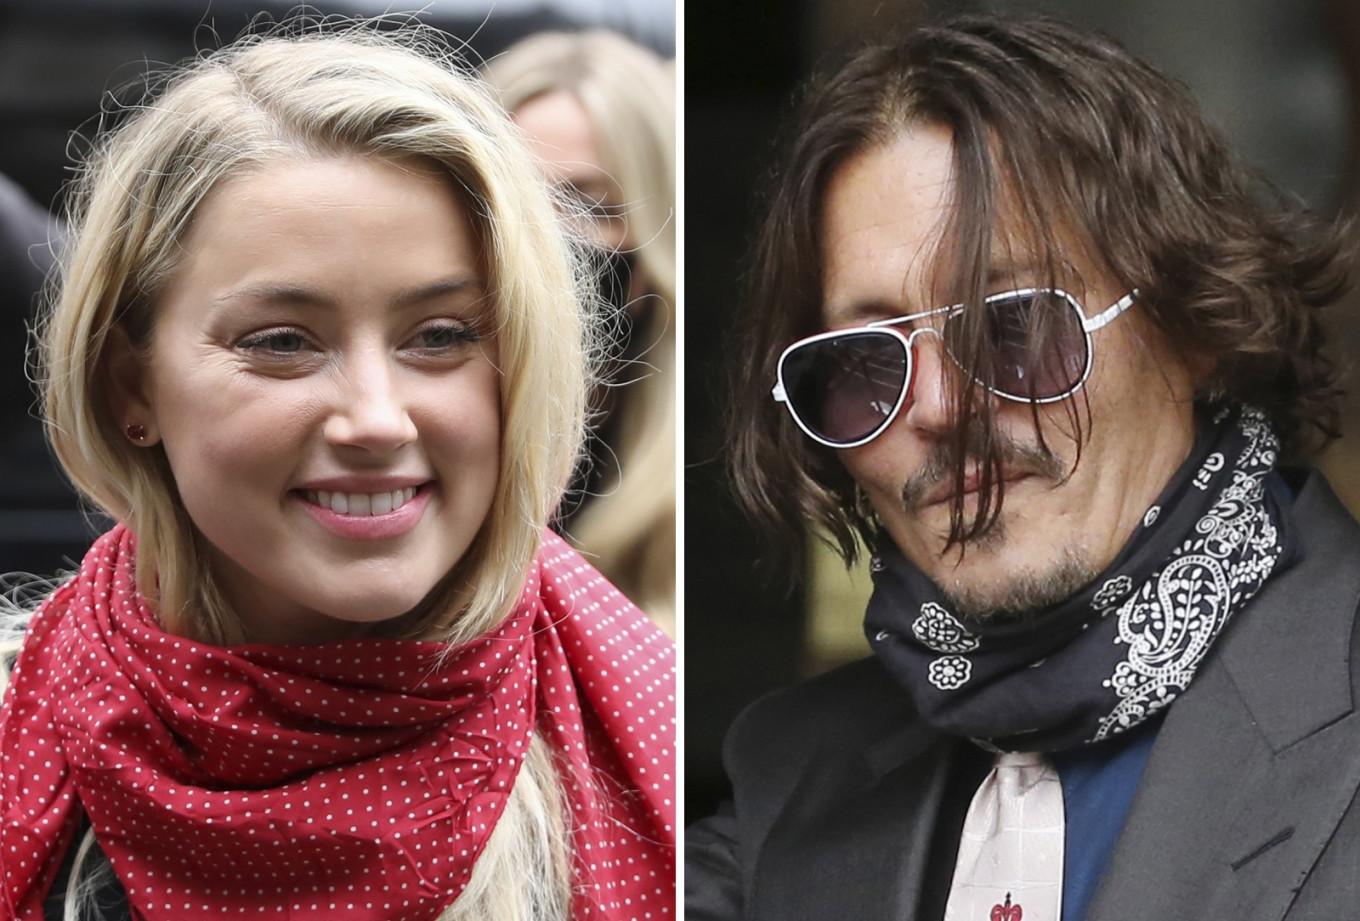 Johnny Depp tells court ex-wife attacked him on night he learned he'd lost $650 million